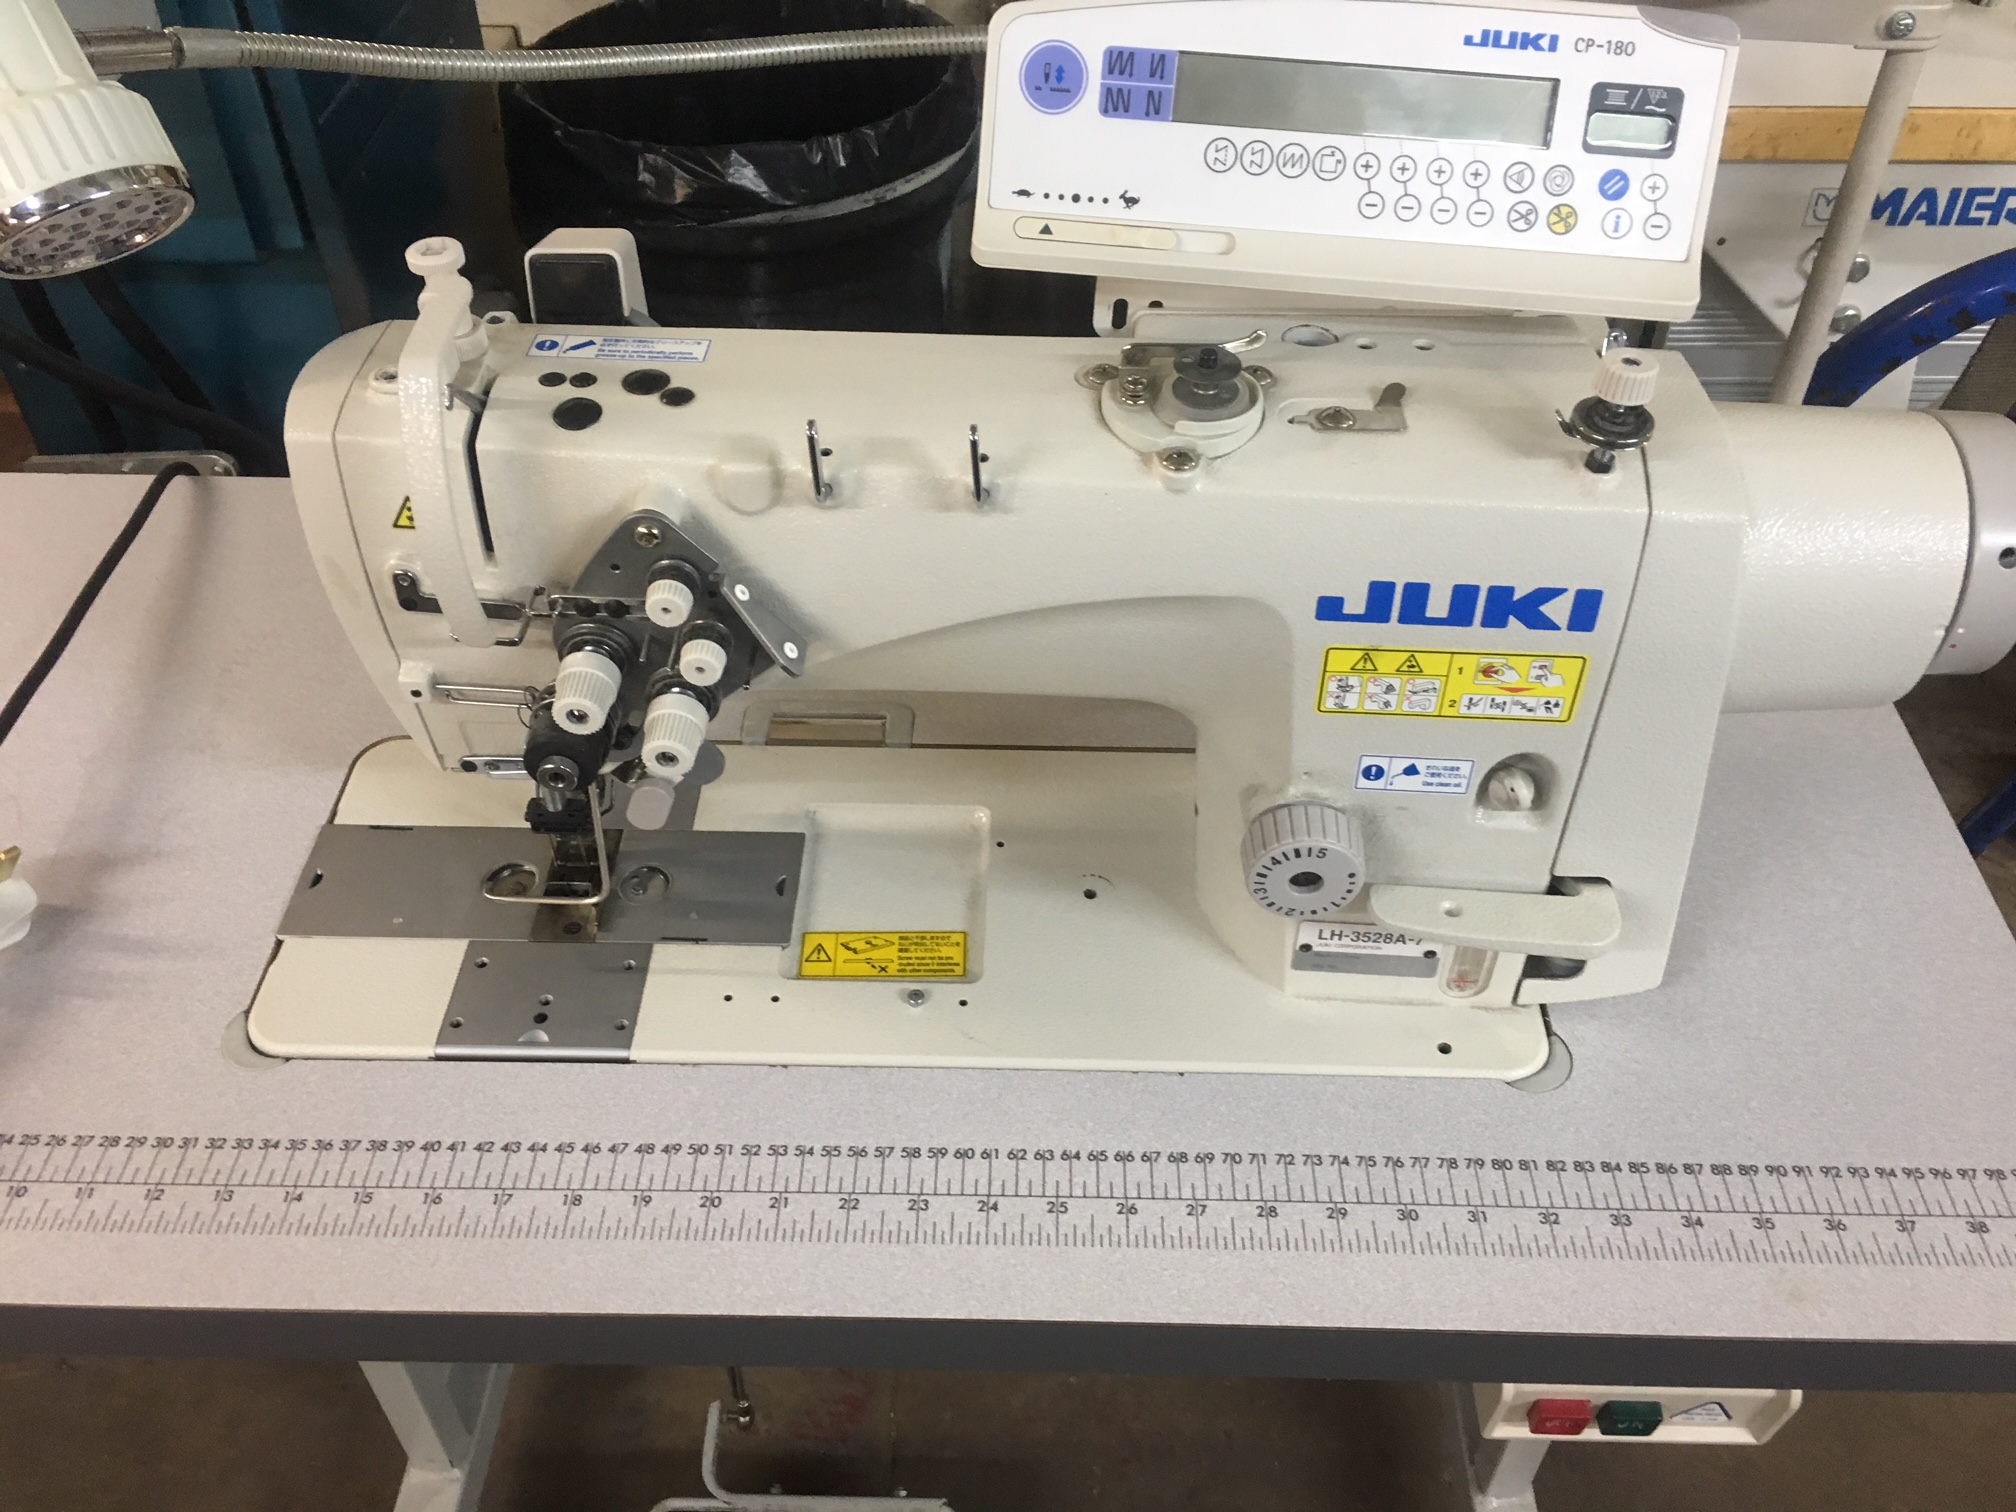 Juki LH-3528A-7 direct drive twin needle lockstitch with thread trimmers